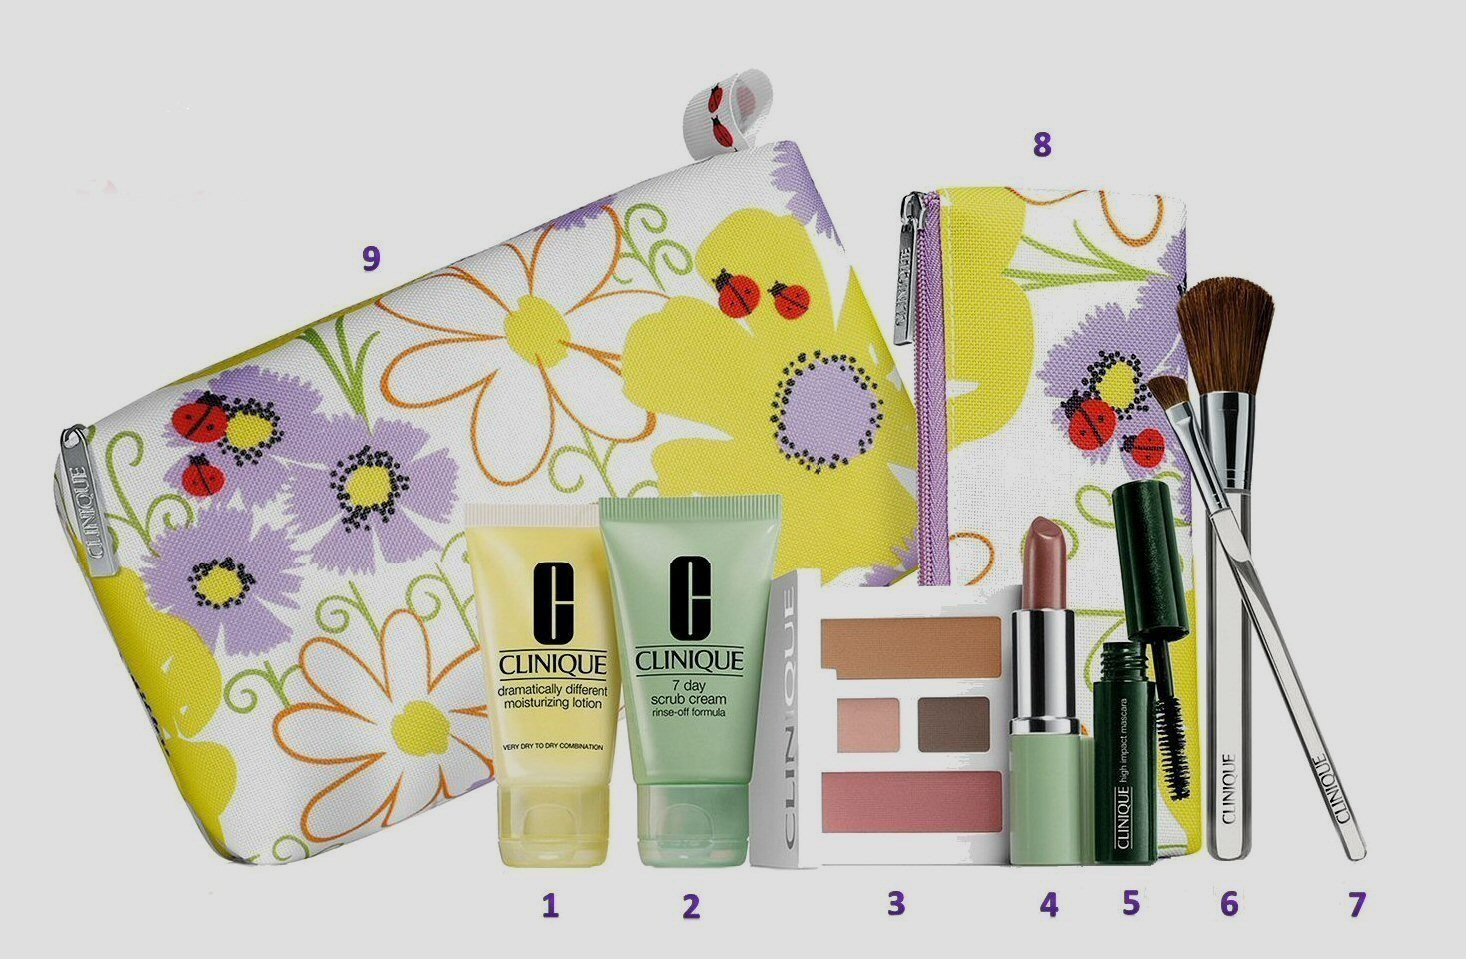 Brand New Clinique 2013 Spring 9 Pcs Beauty Essentials (Violet Color) Gift + Brush Set, Includes: (1) 7 Day Scrub Cream Rinse Off Formula 1 Oz, (1) Dramatically Different Moisturizing Lotion 1 Oz, (1) High Impact Mascara in Black, (1) Compact with Twilight Mauve/brandied Plum Duo Eye Shadow,